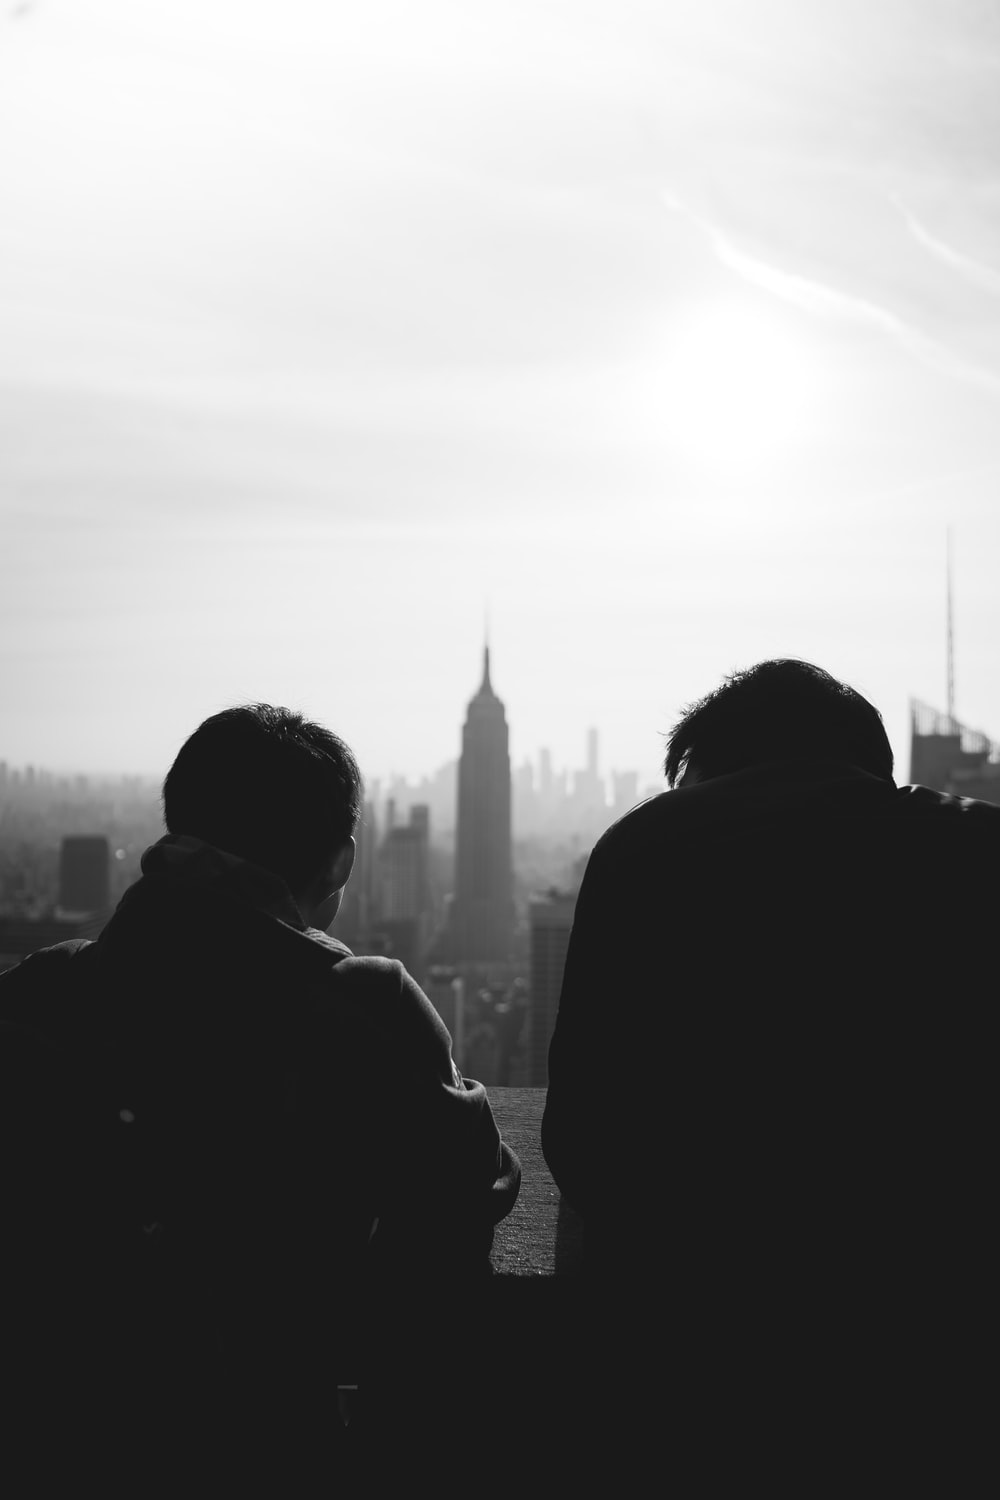 silhouette of 2 person standing near high rise building during daytime